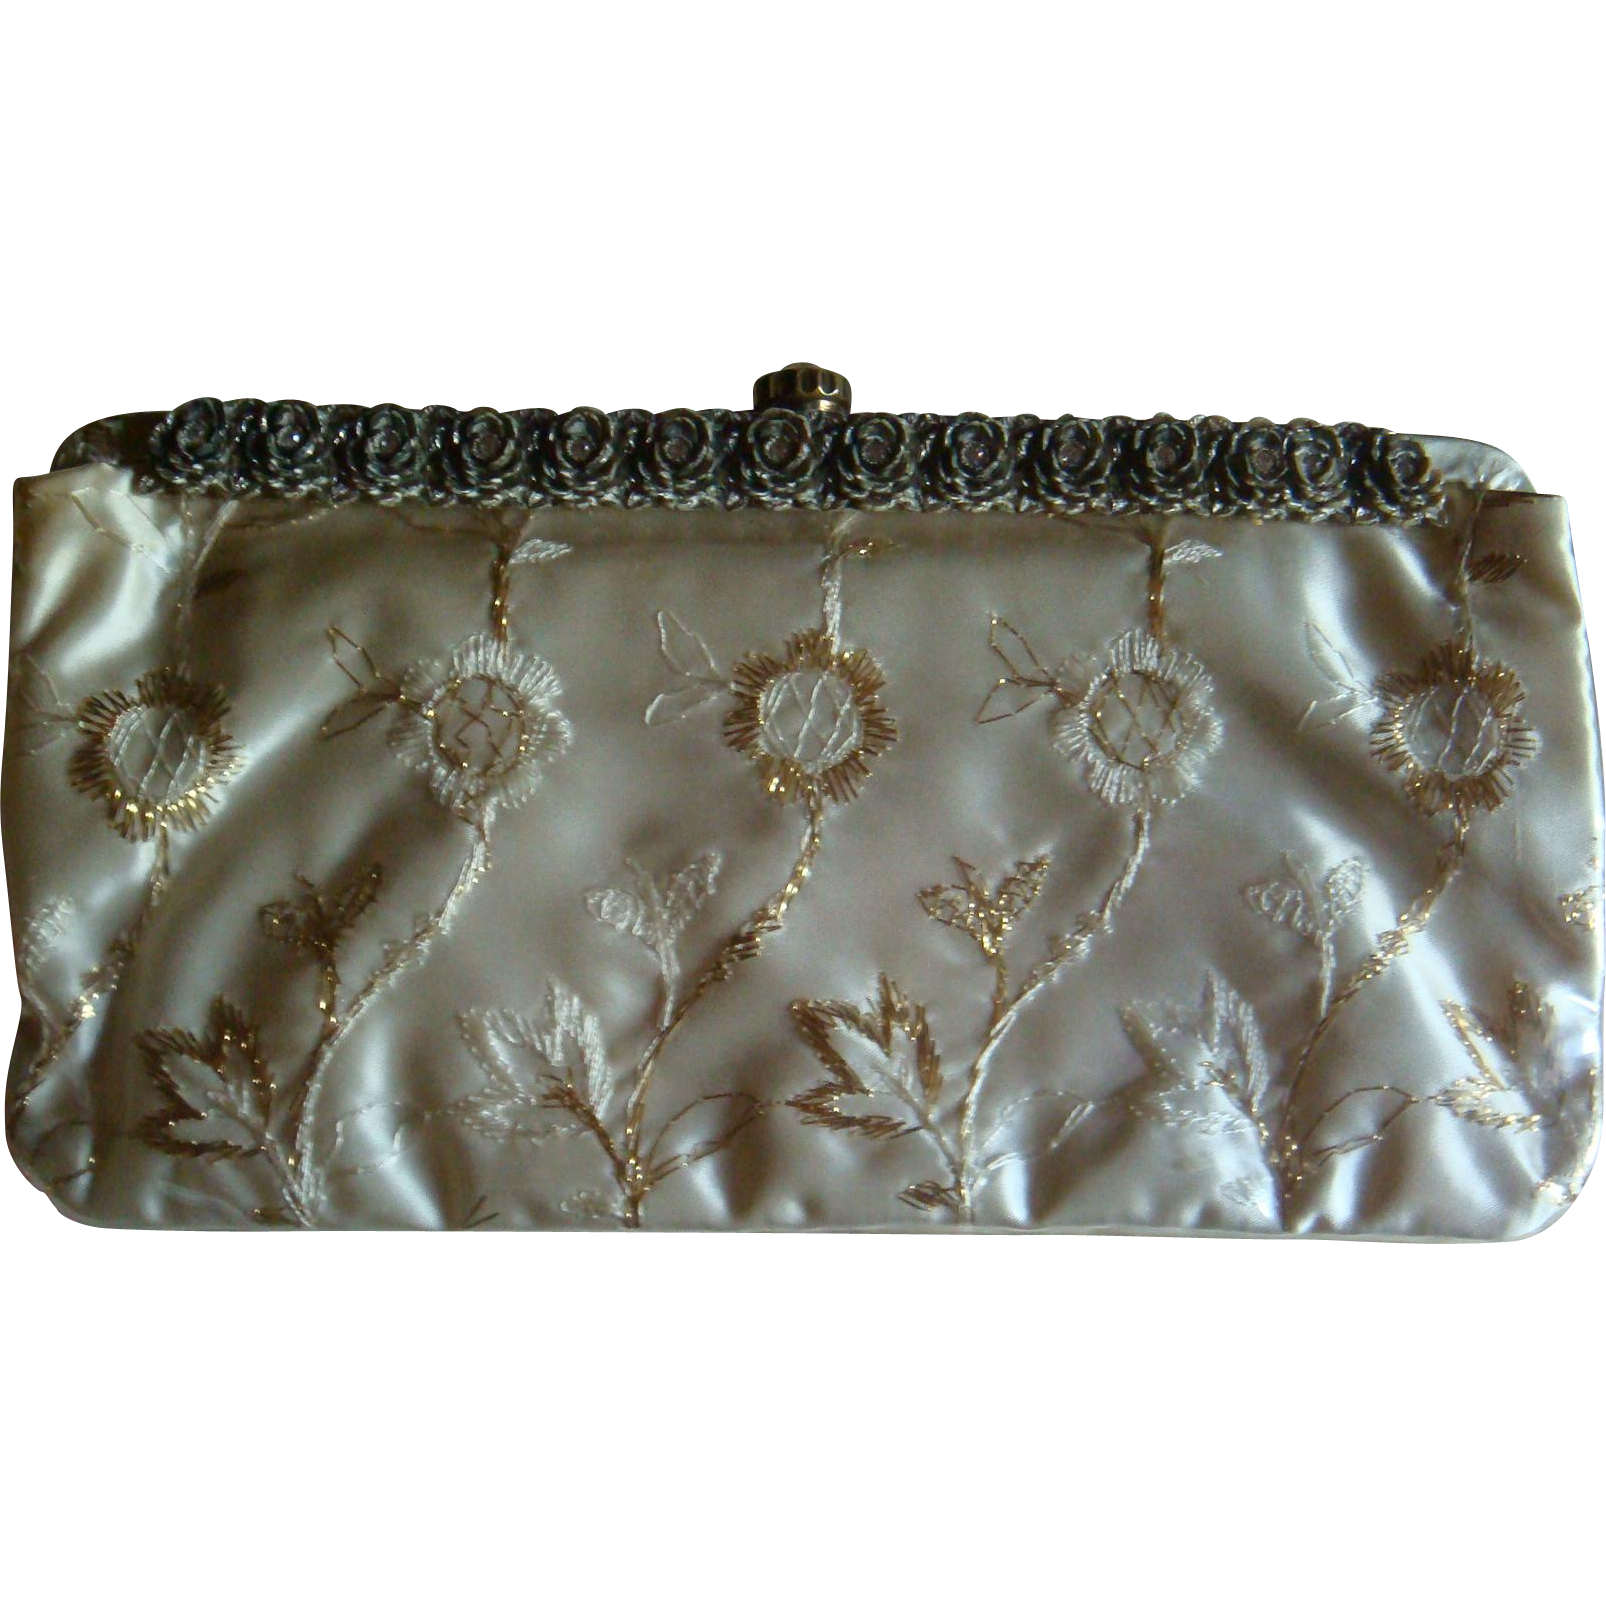 Patricia of Miami Vinyl over Satin Purse Gold Thread, Rhinestone Rose Frame, Kiss Lock